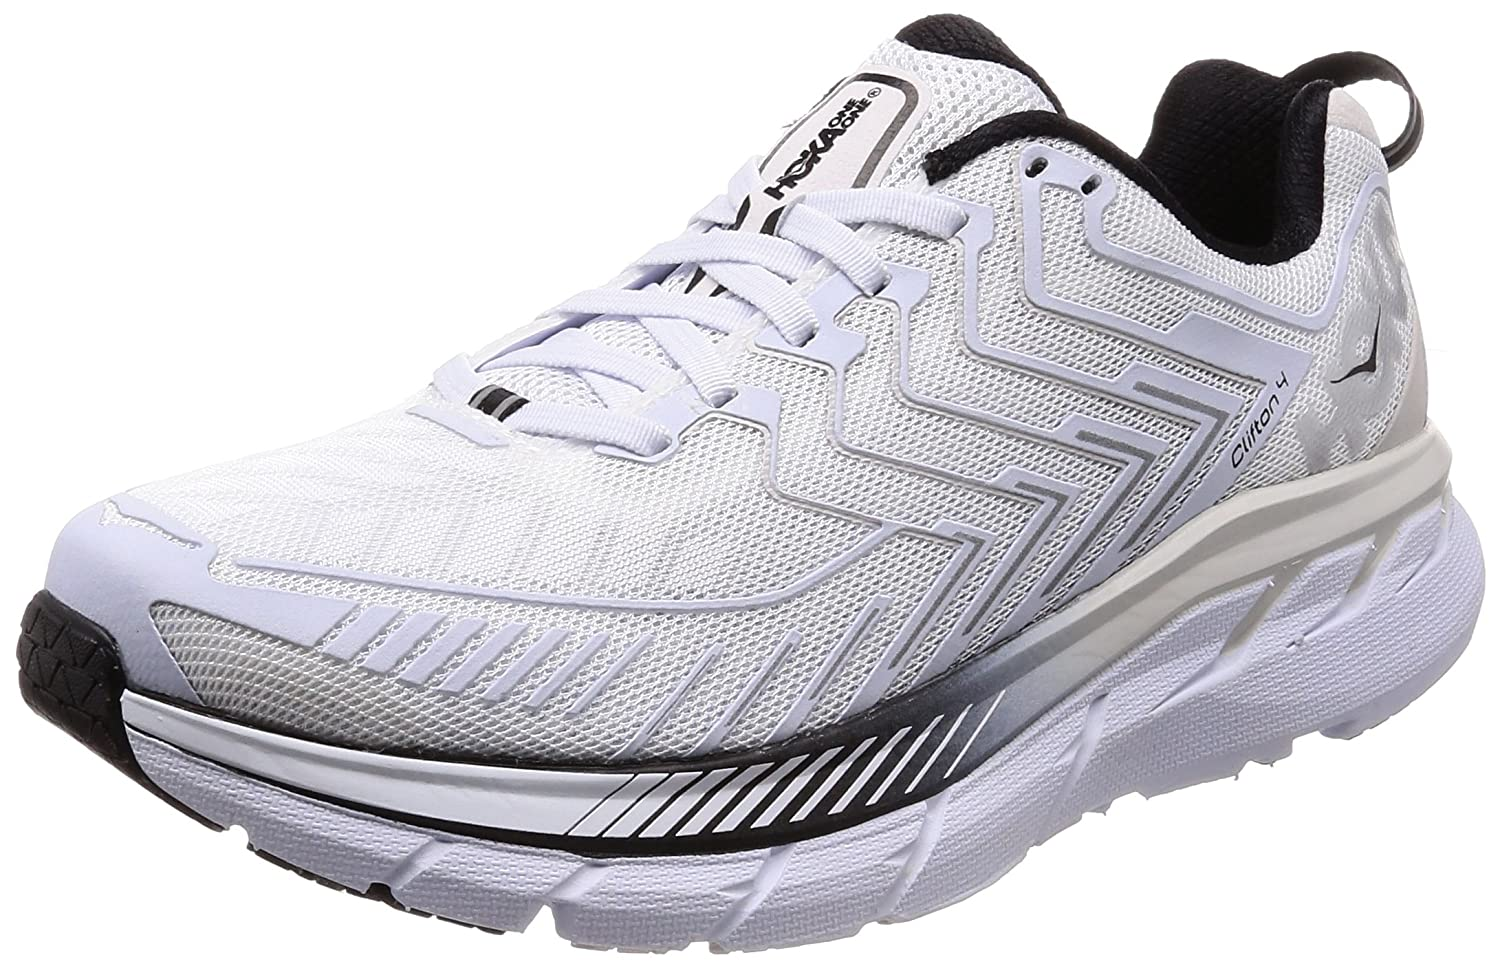 nueva selección comprar baratas comprar bien HOKA ONE ONE Men's M Clifton 4 White/Black Running Shoe 8.5 Men US